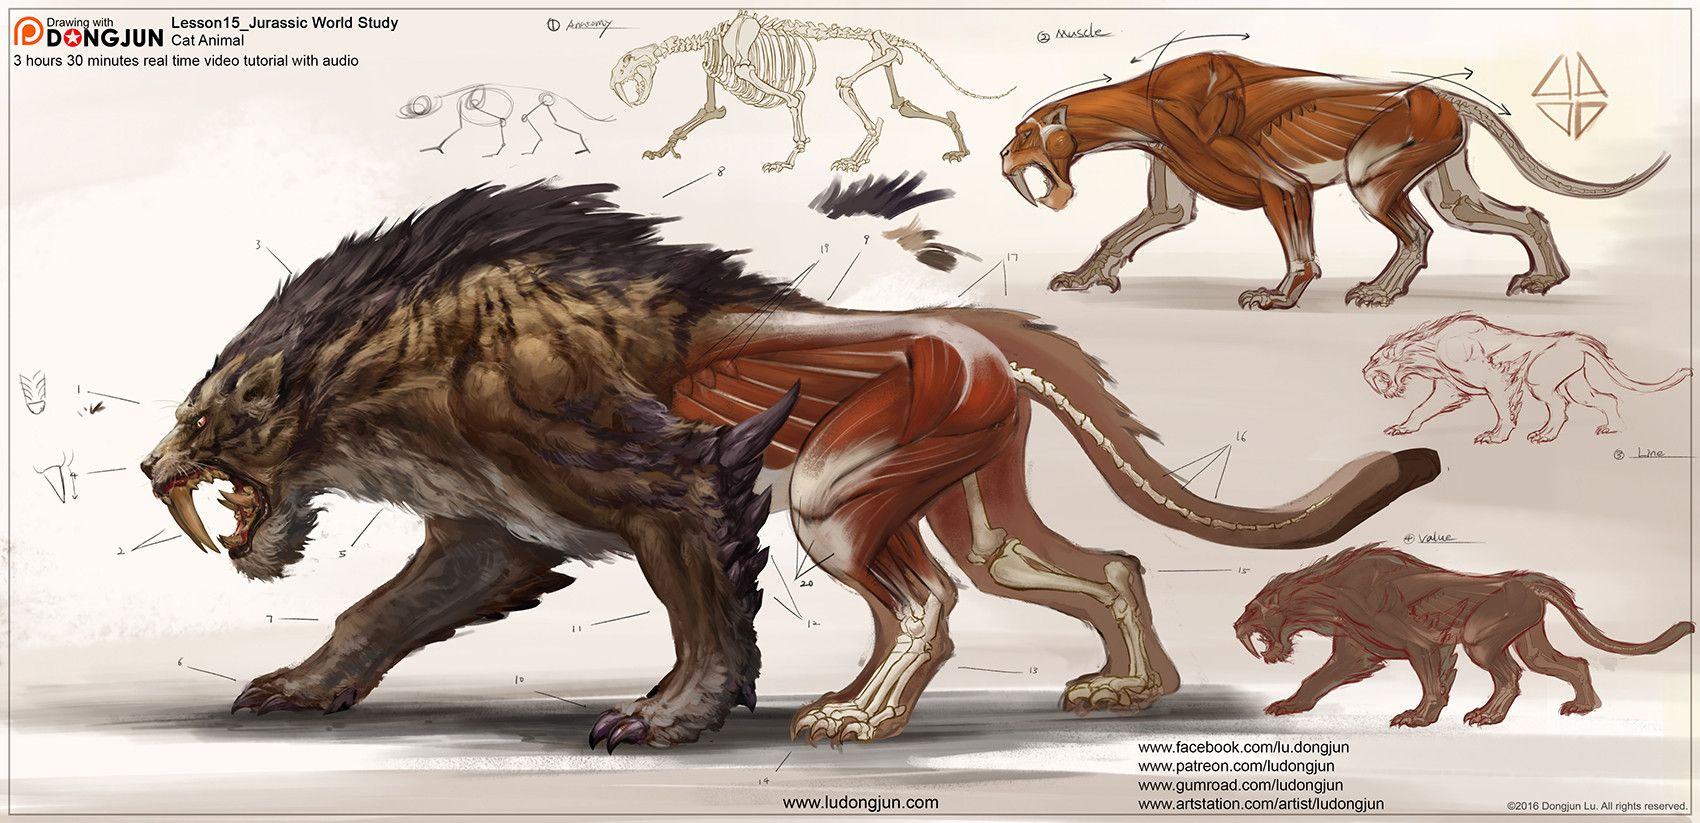 Pin by Animators Resource - on Animal/Creature Character Reference in 2019 | Creature concept ...